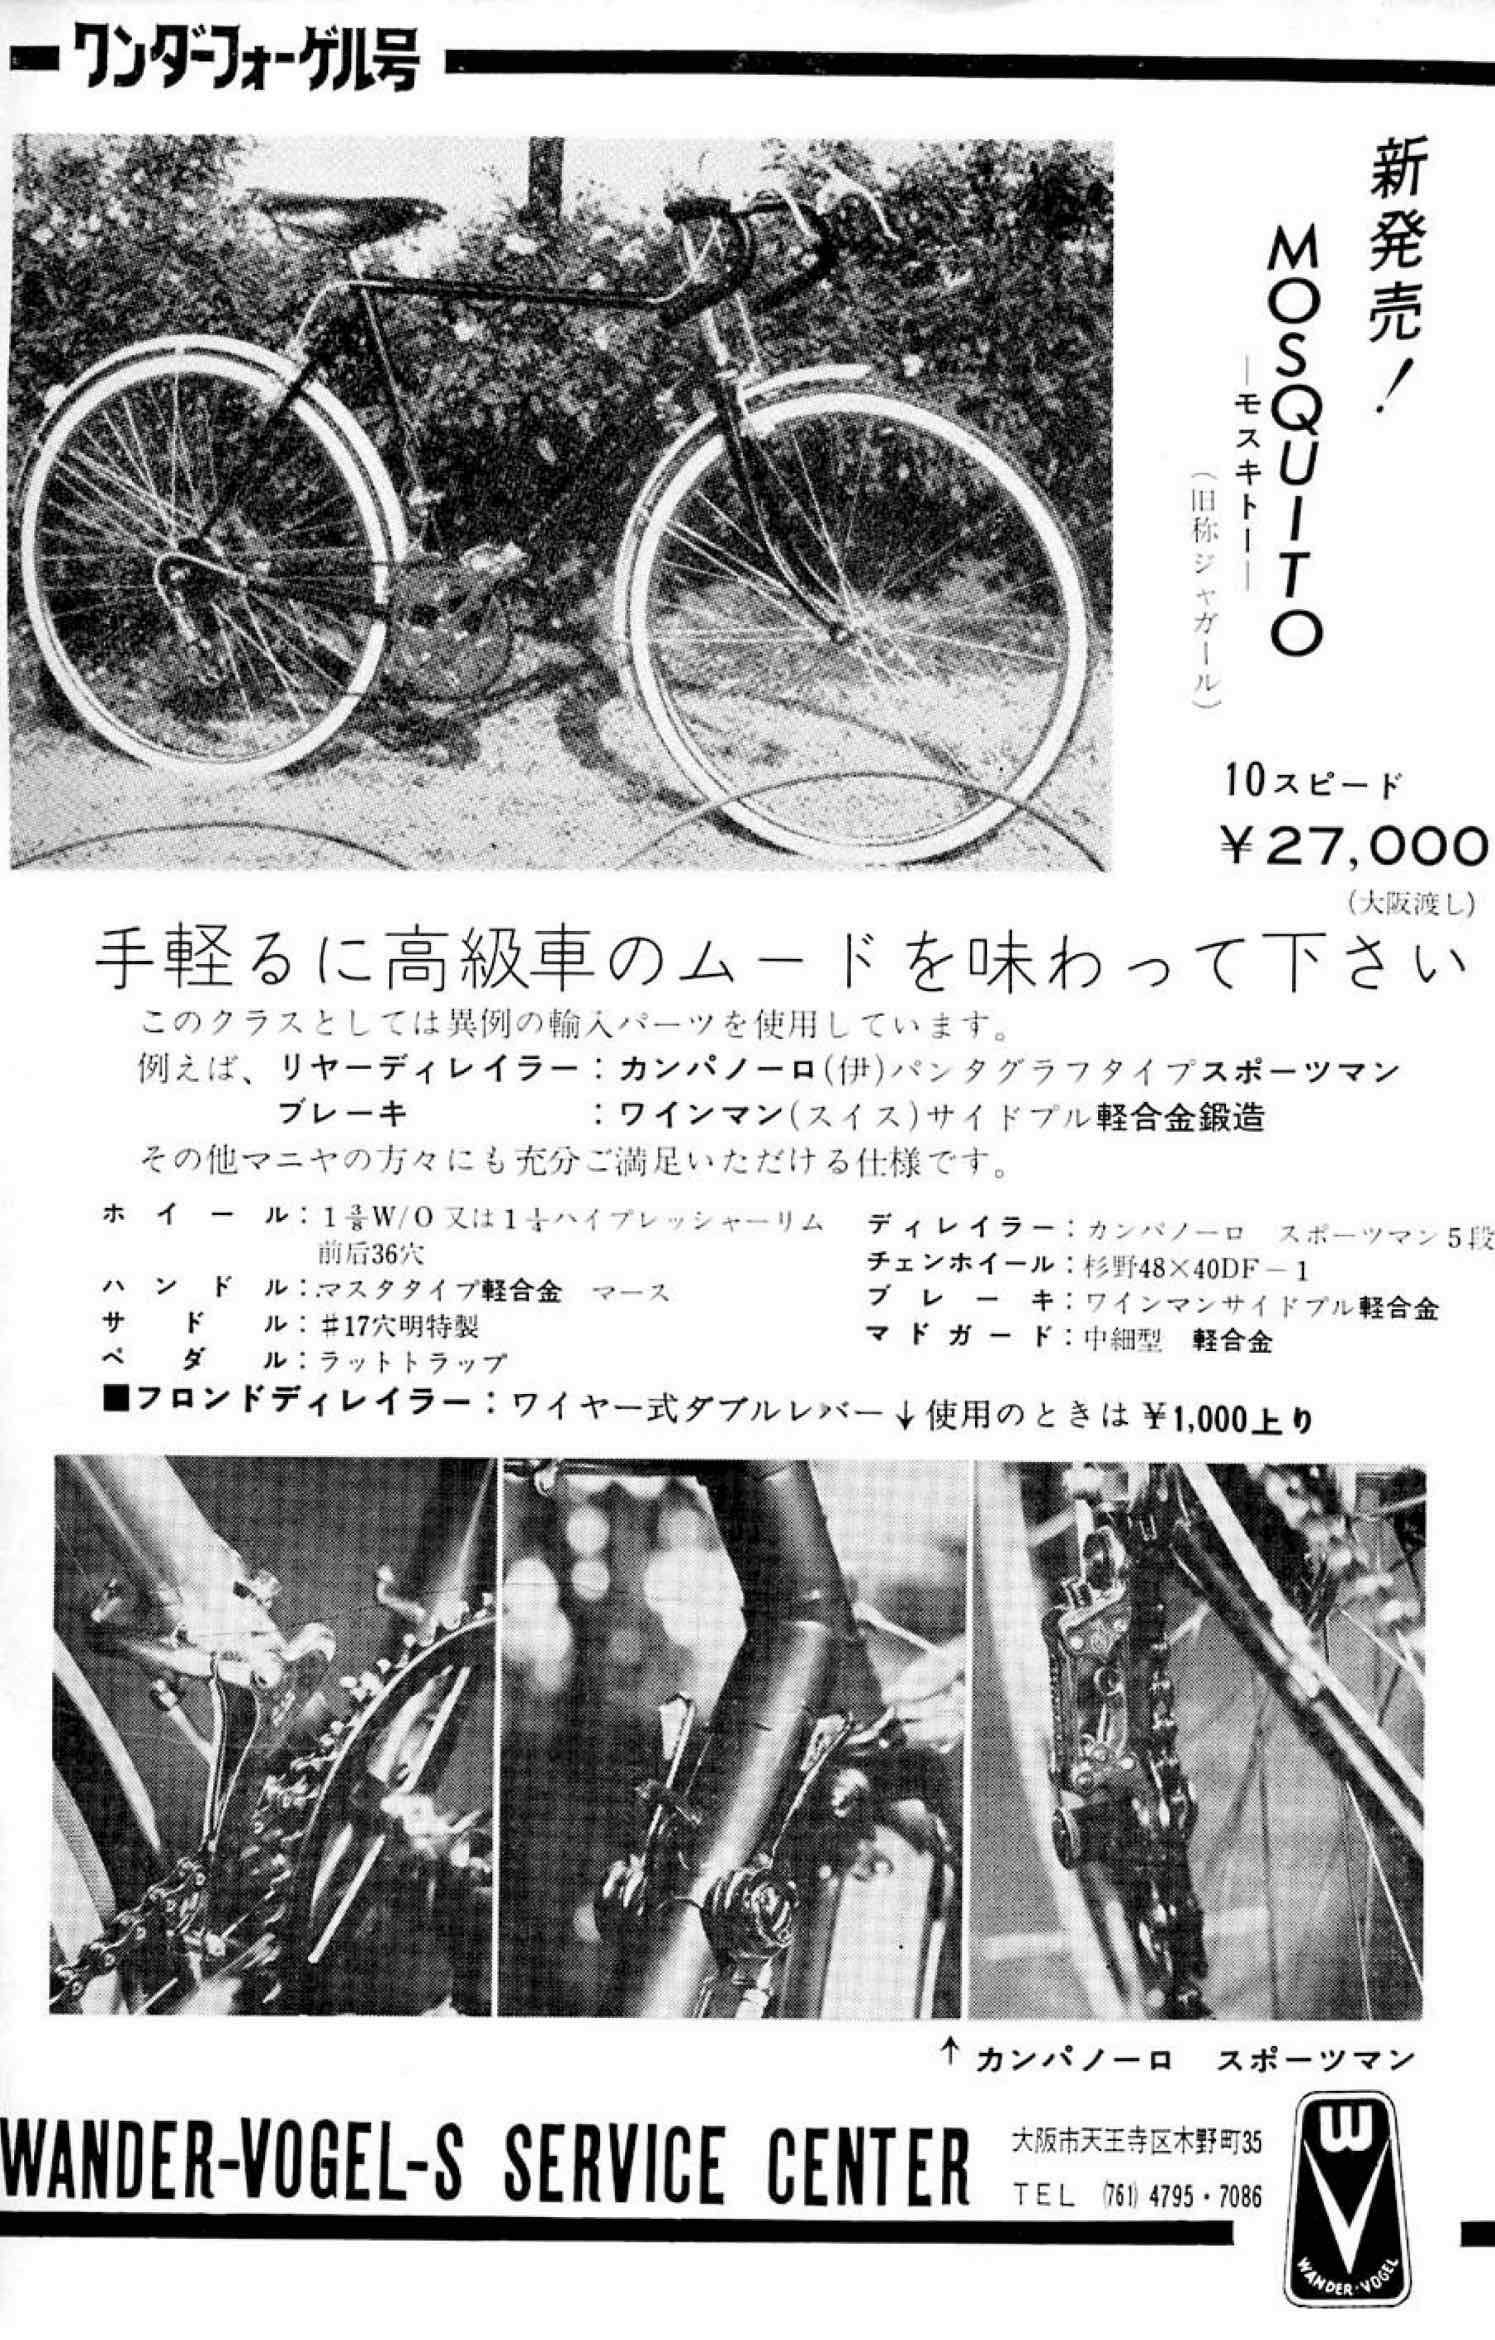 Shimano Derailleurs Bicycle Diagram And Parts List For Sears Bicycleparts Model New Cycling April 1964 Wander Vogel Advert Thumbnail